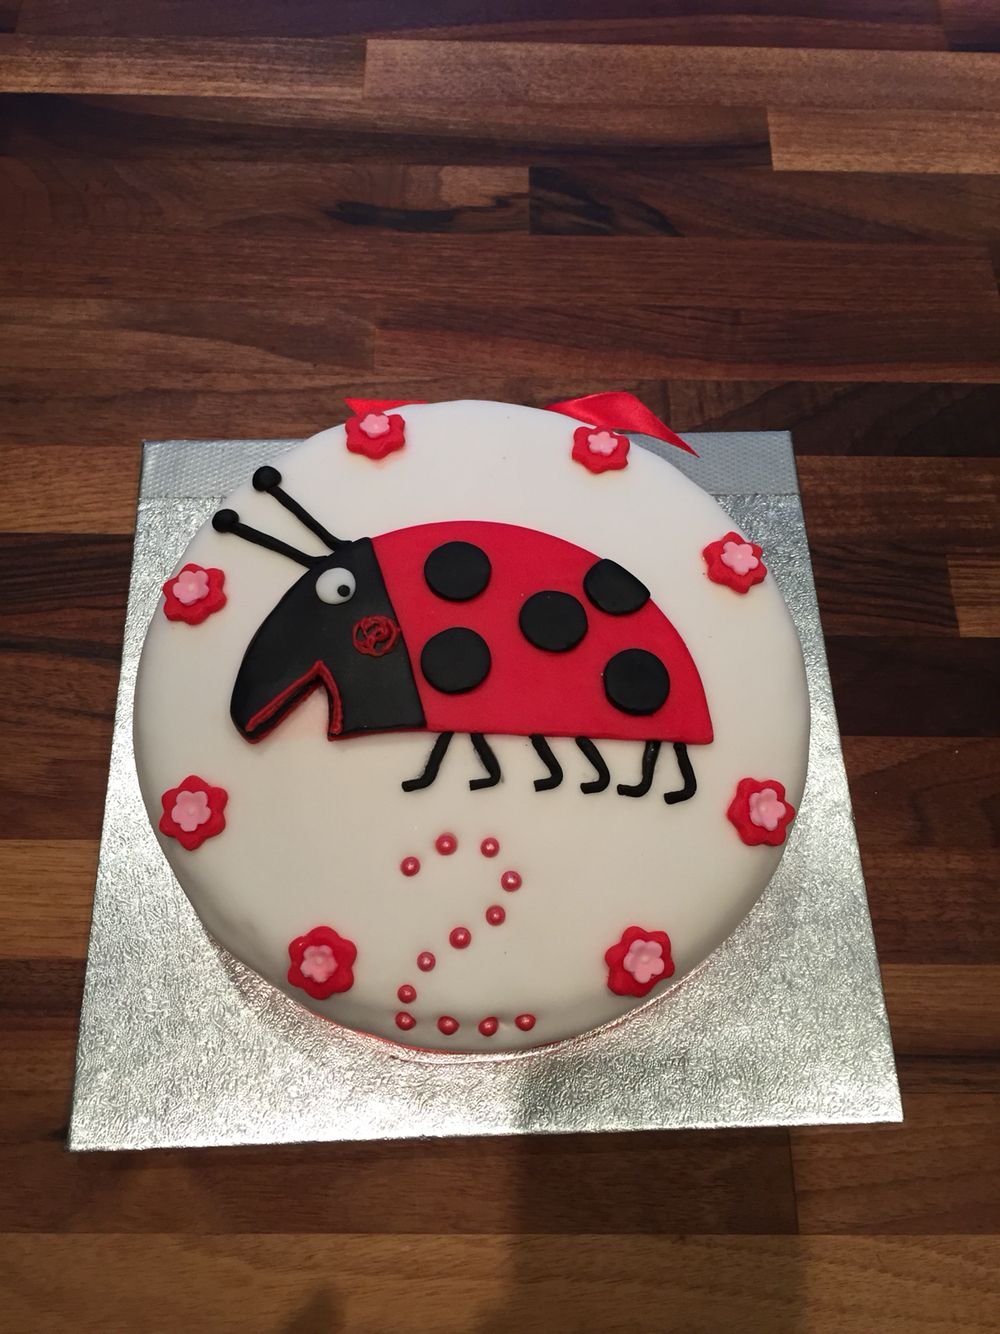 Gaston The Ladybird Cake Ben And Holly Easy Recipes